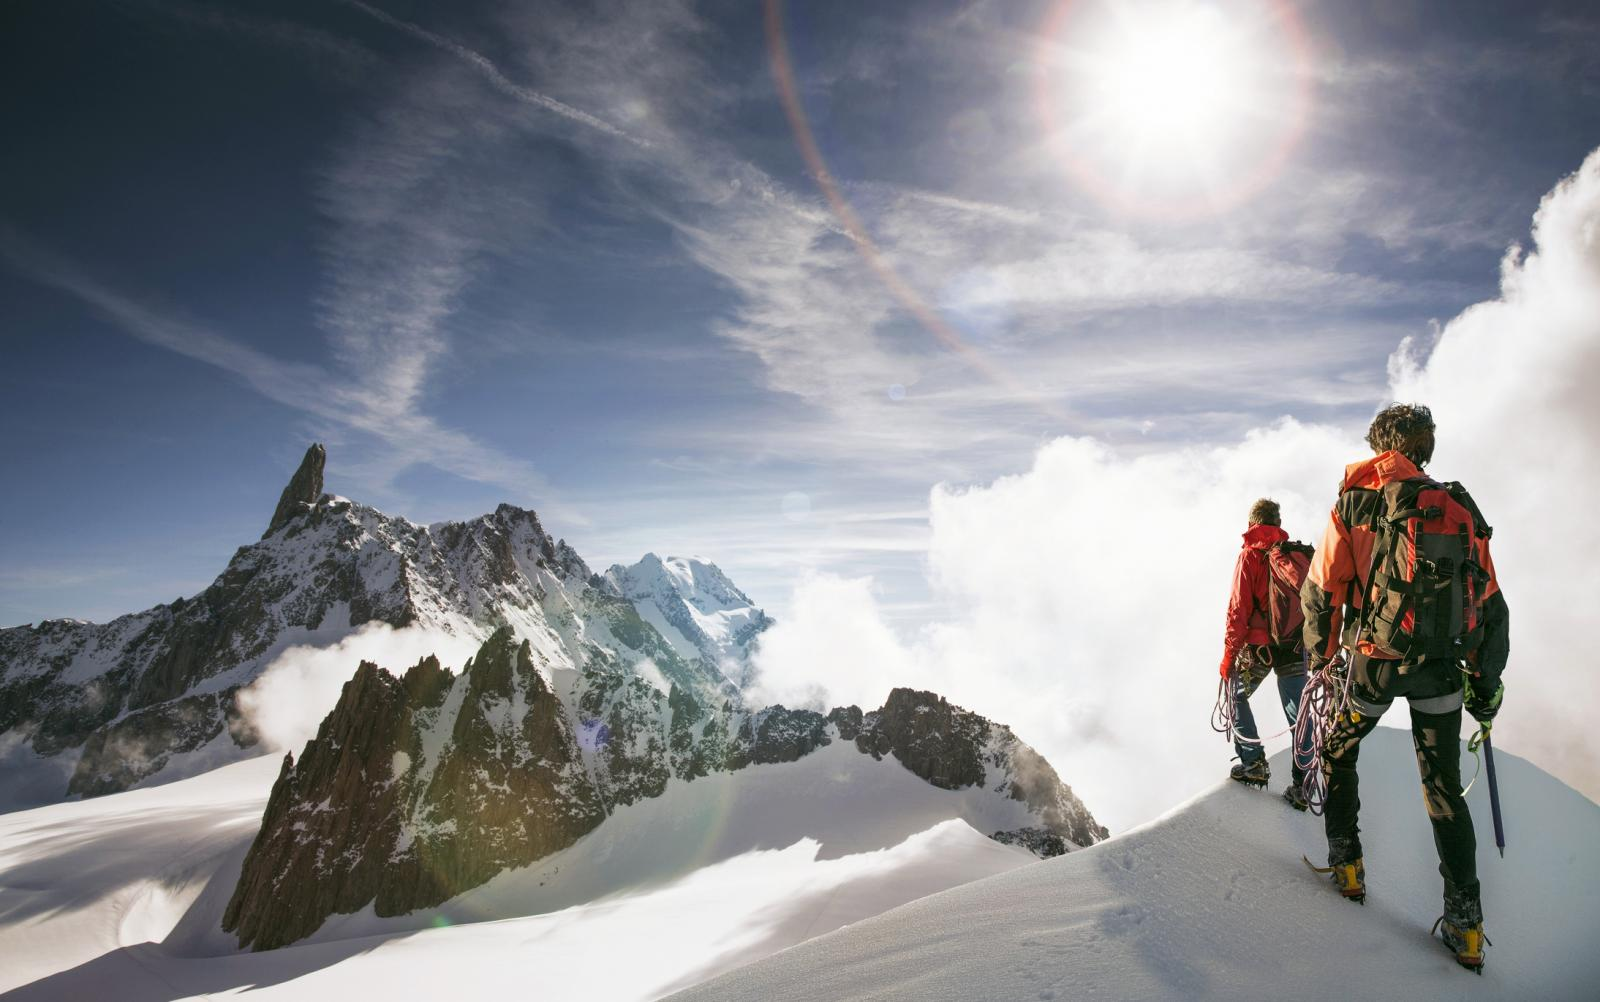 Hikers standing on snowy mountain top